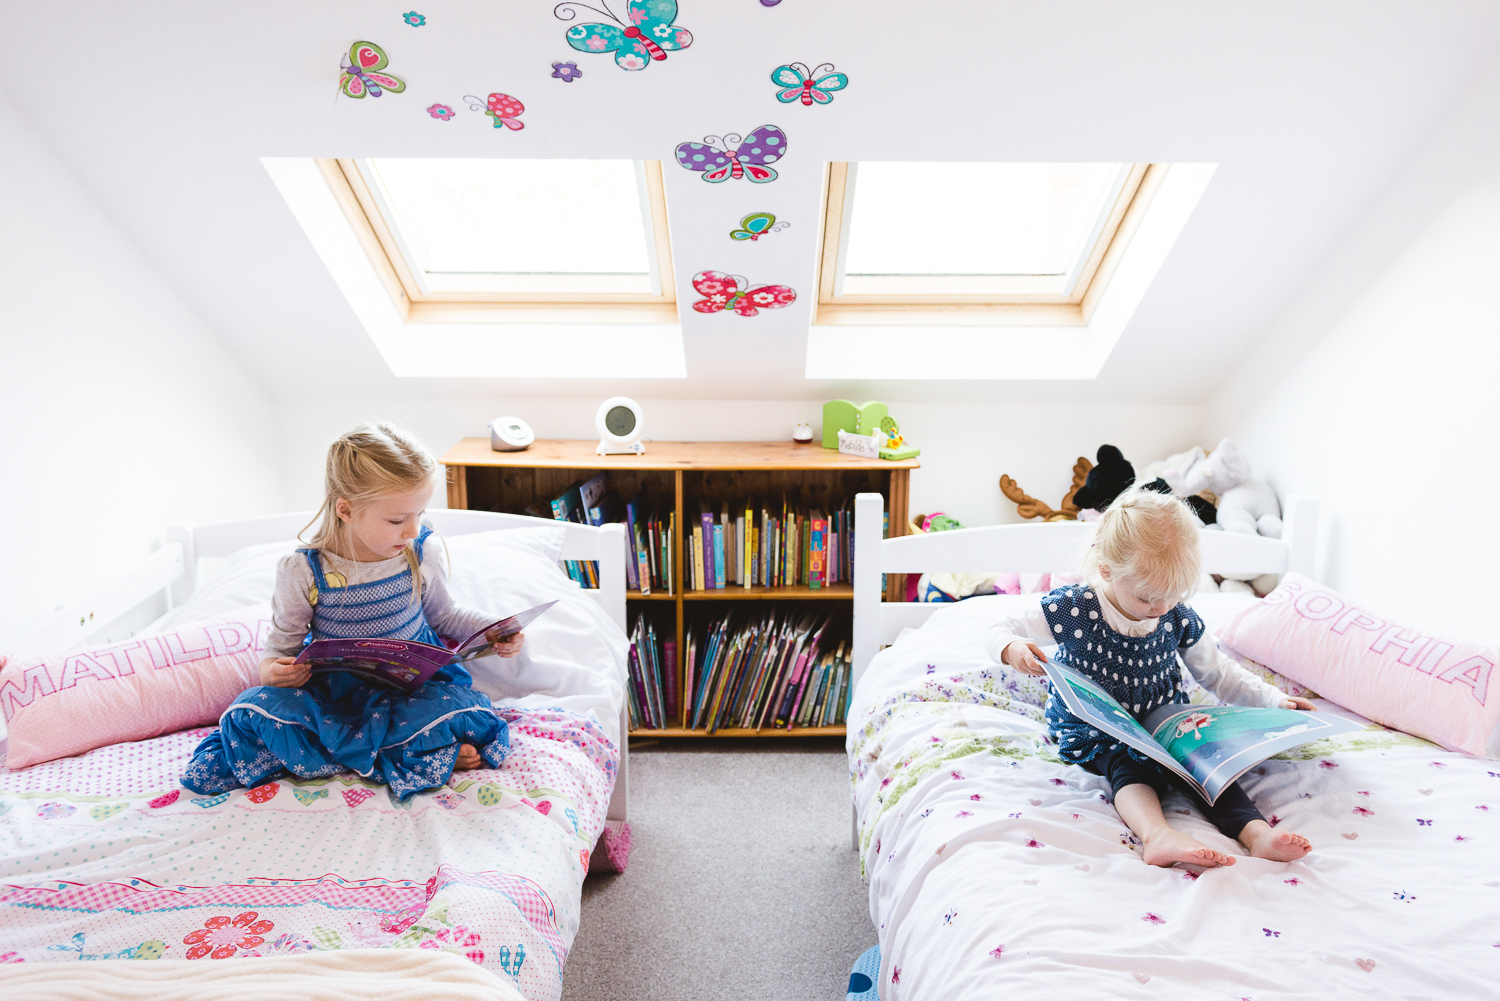 Staffordshire Documentary Child Portrait Photography by Jenny Harper Girls Reading Bedroom Butterflies-1.jpg